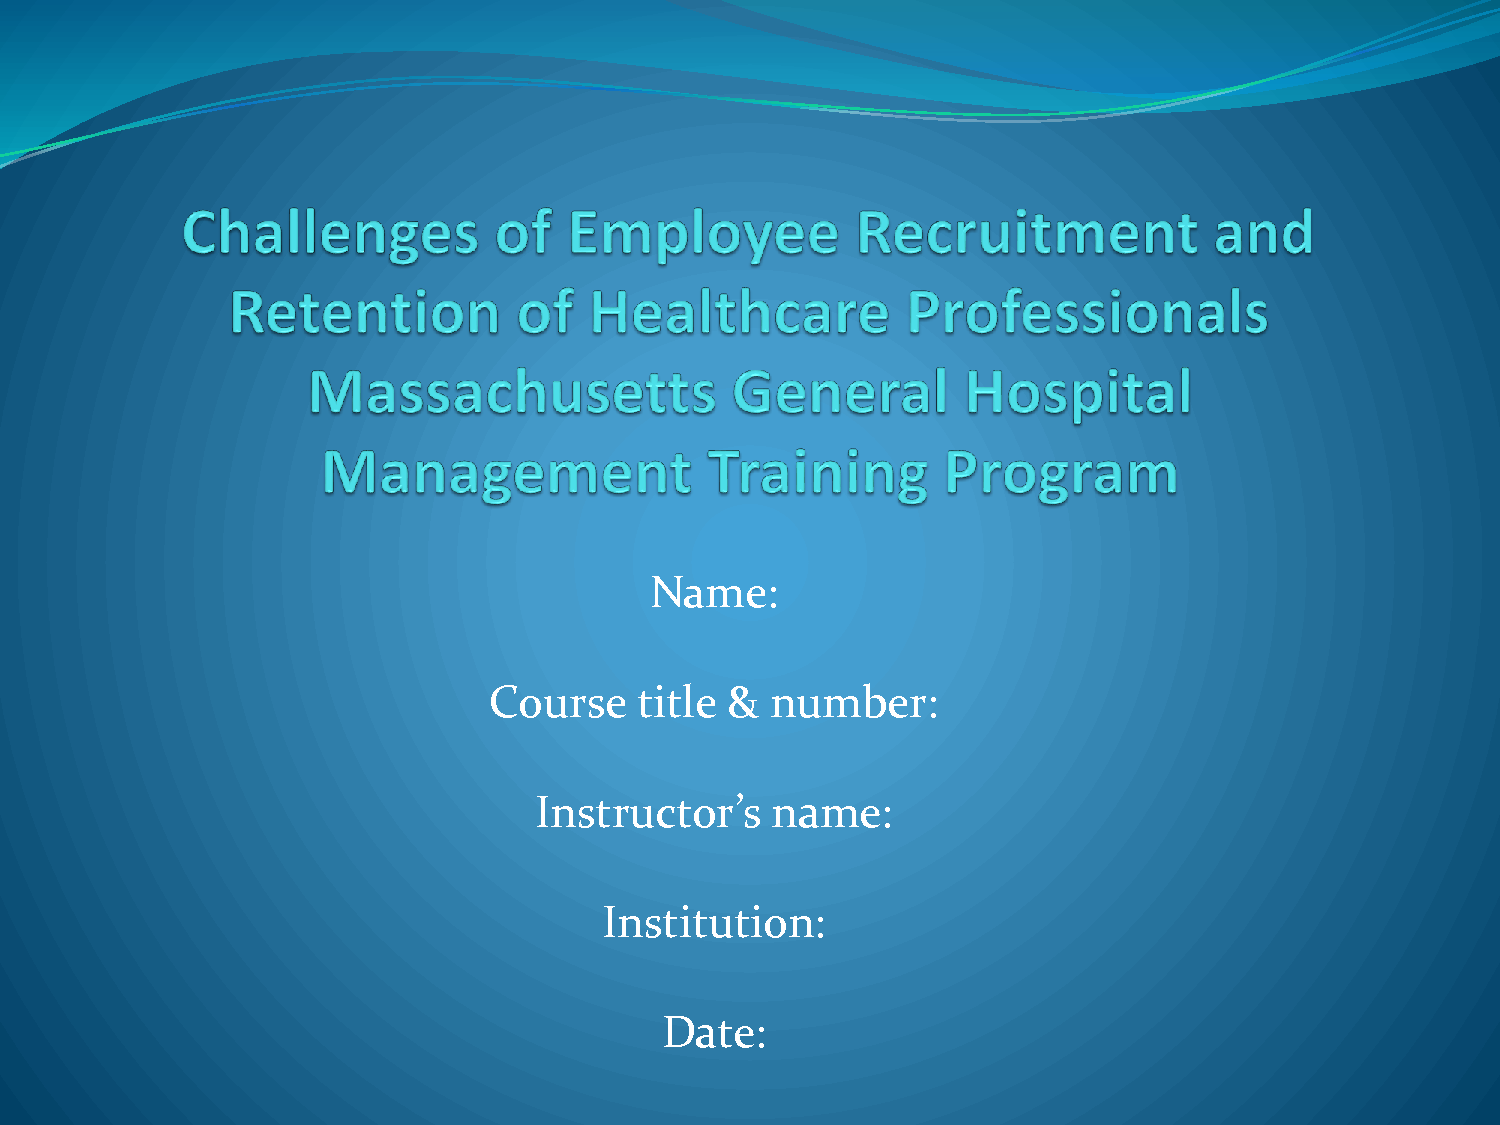 the challenges of employee recruitment and retention of health care professionals As baby boomer healthcare professionals retire and more individuals gain access to healthcare coverage, there may be more substantial physician shortages in response to losing more employees in the highly competitive market, the survey found that turnover was the largest hiring and recruiting concern in 2015.